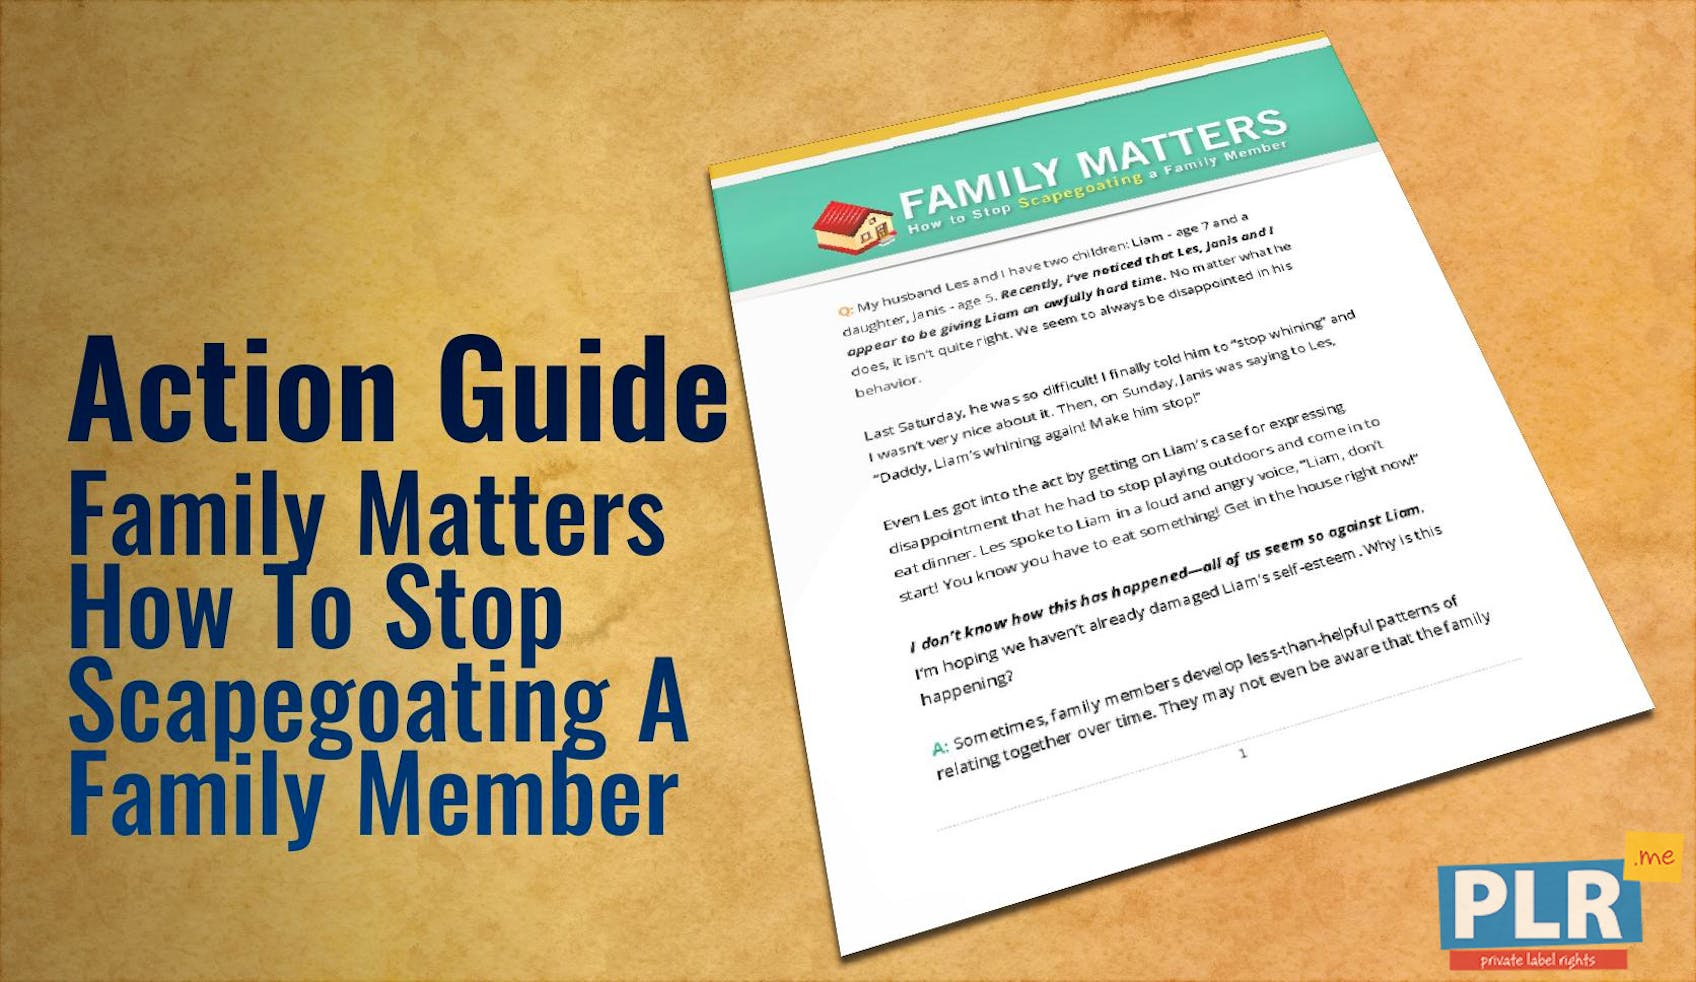 Family Matters How To Stop Scapegoating A Family Member